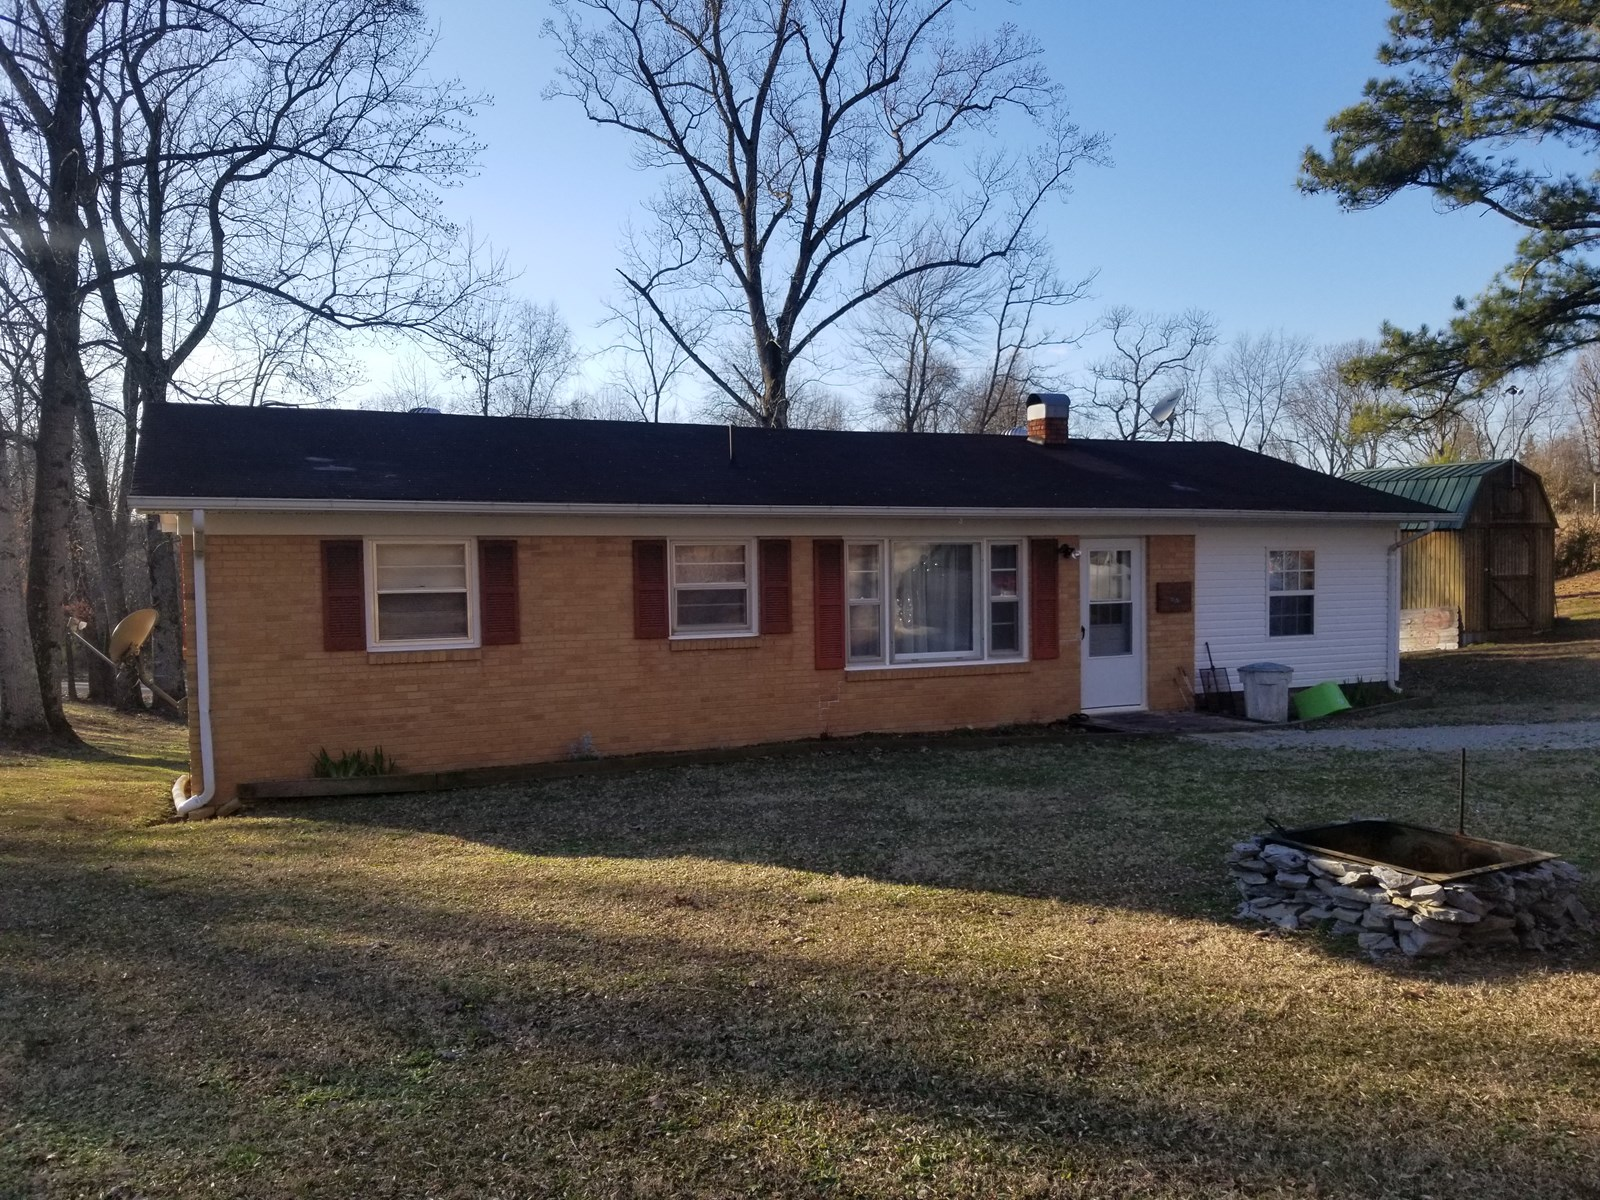 WAYNE CO TN 4 BEDROOM 2 BATH BRICK HOME FOR SALE .9 ACRE